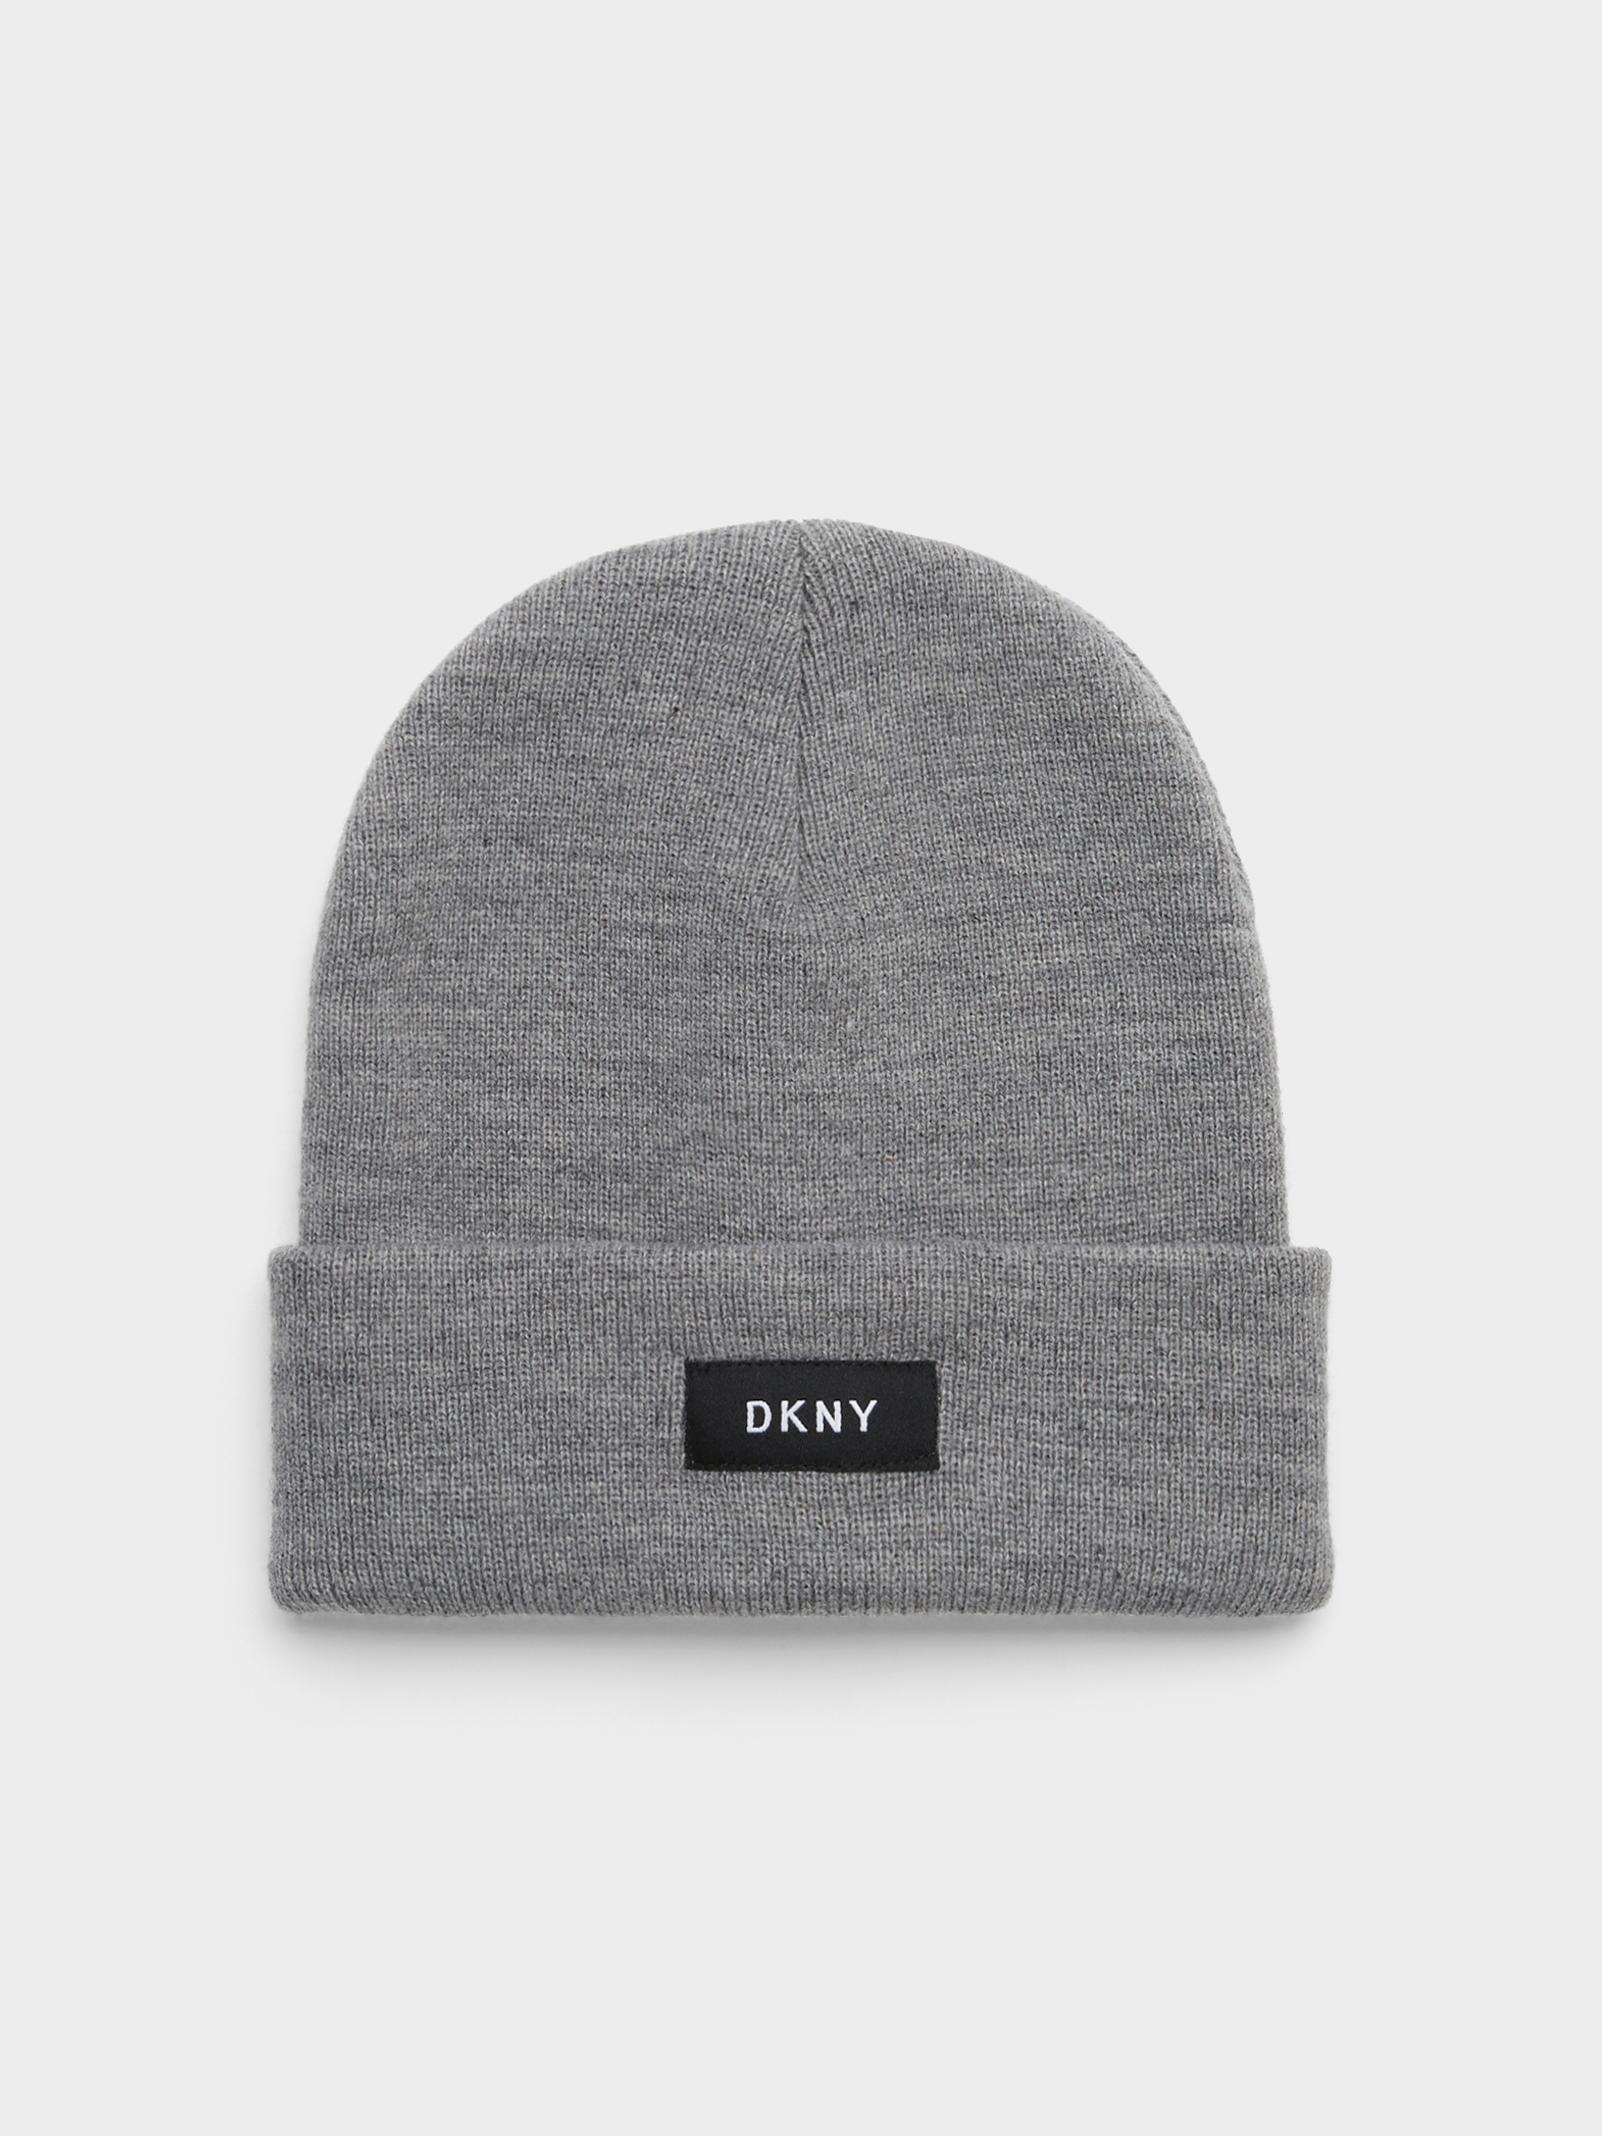 Lyst - DKNY Fold Over Hat in Gray for Men bc87be119d1d